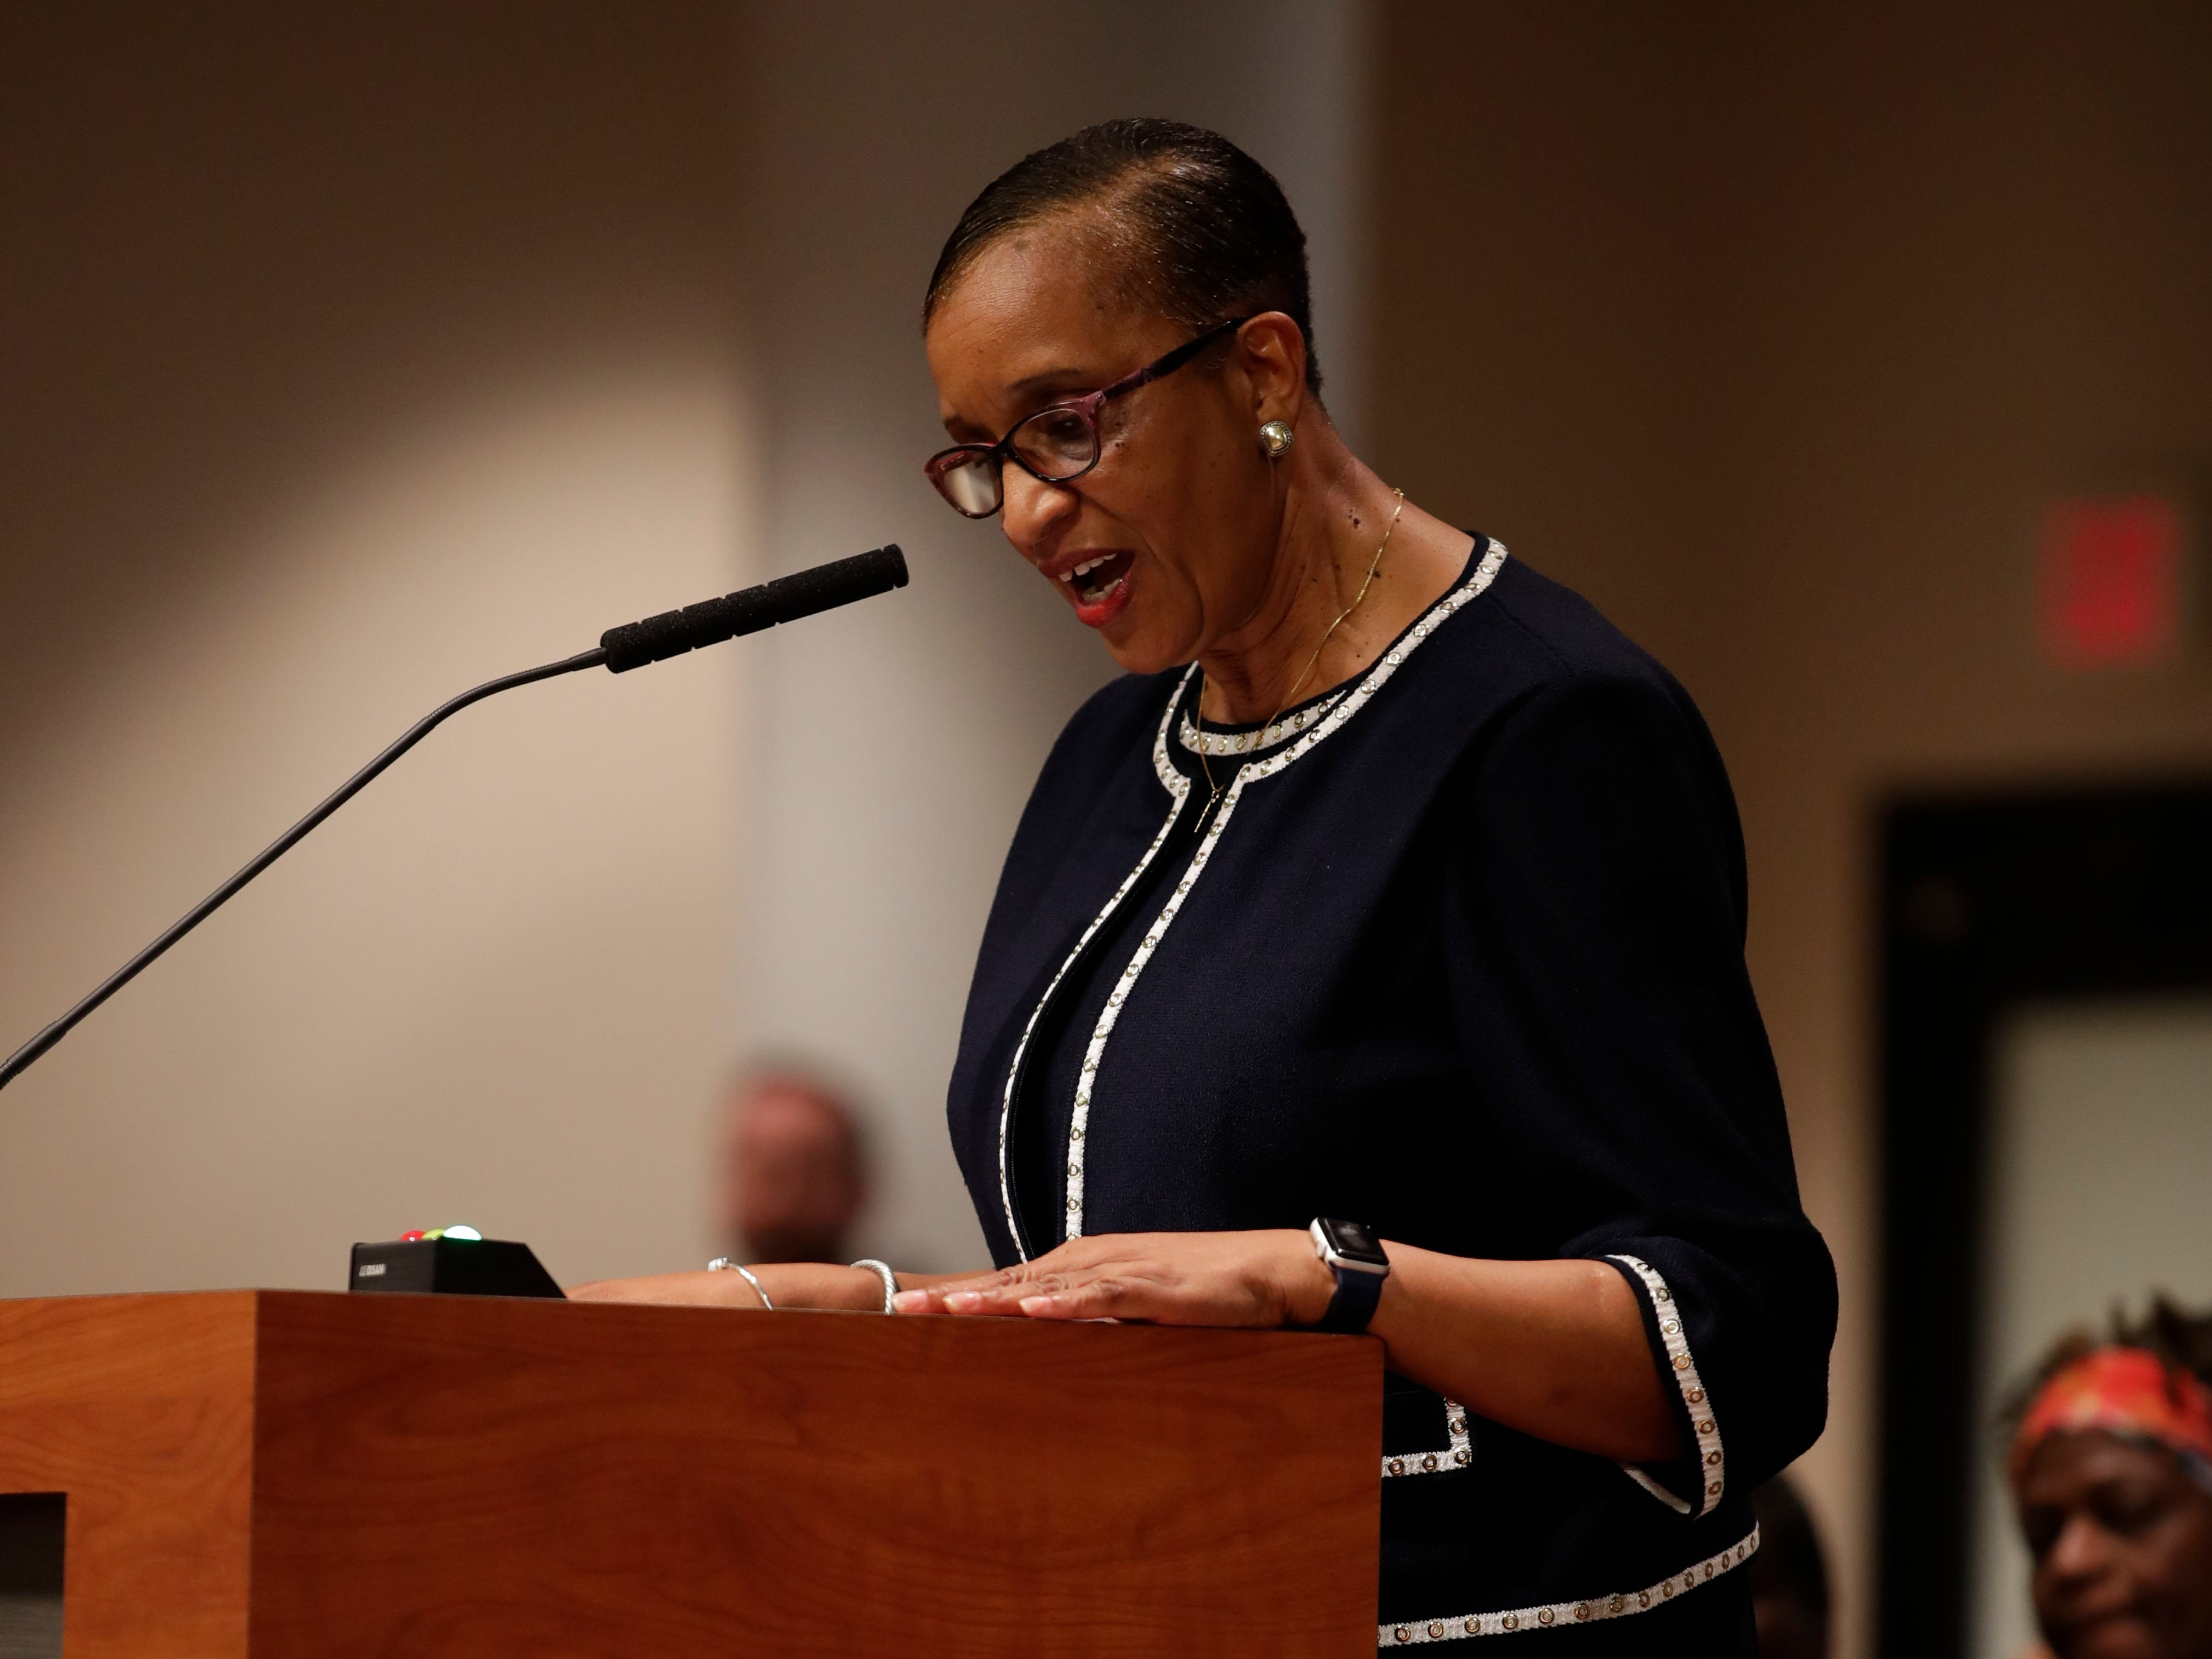 Elaine Bryant has been unanimously selected to be the new city commissioner during the City Commission meeting, Monday, Dec. 31, 2018, to replace Scott Maddox.